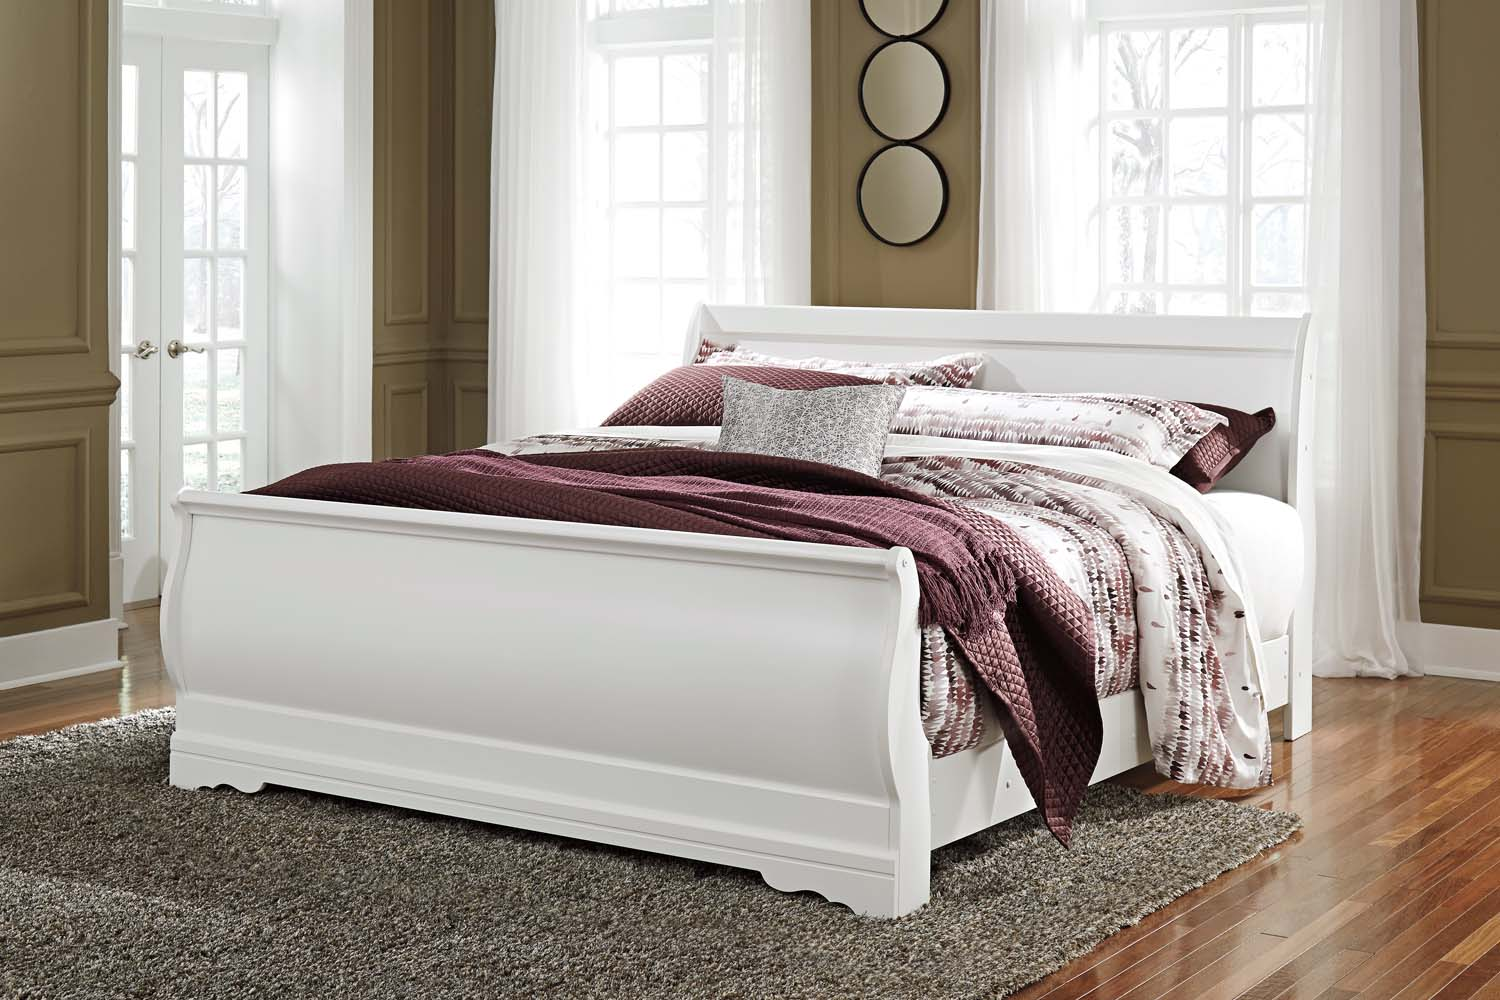 B12978Ashley Furniture King Sleigh Headboard - Westco Home Furnishings